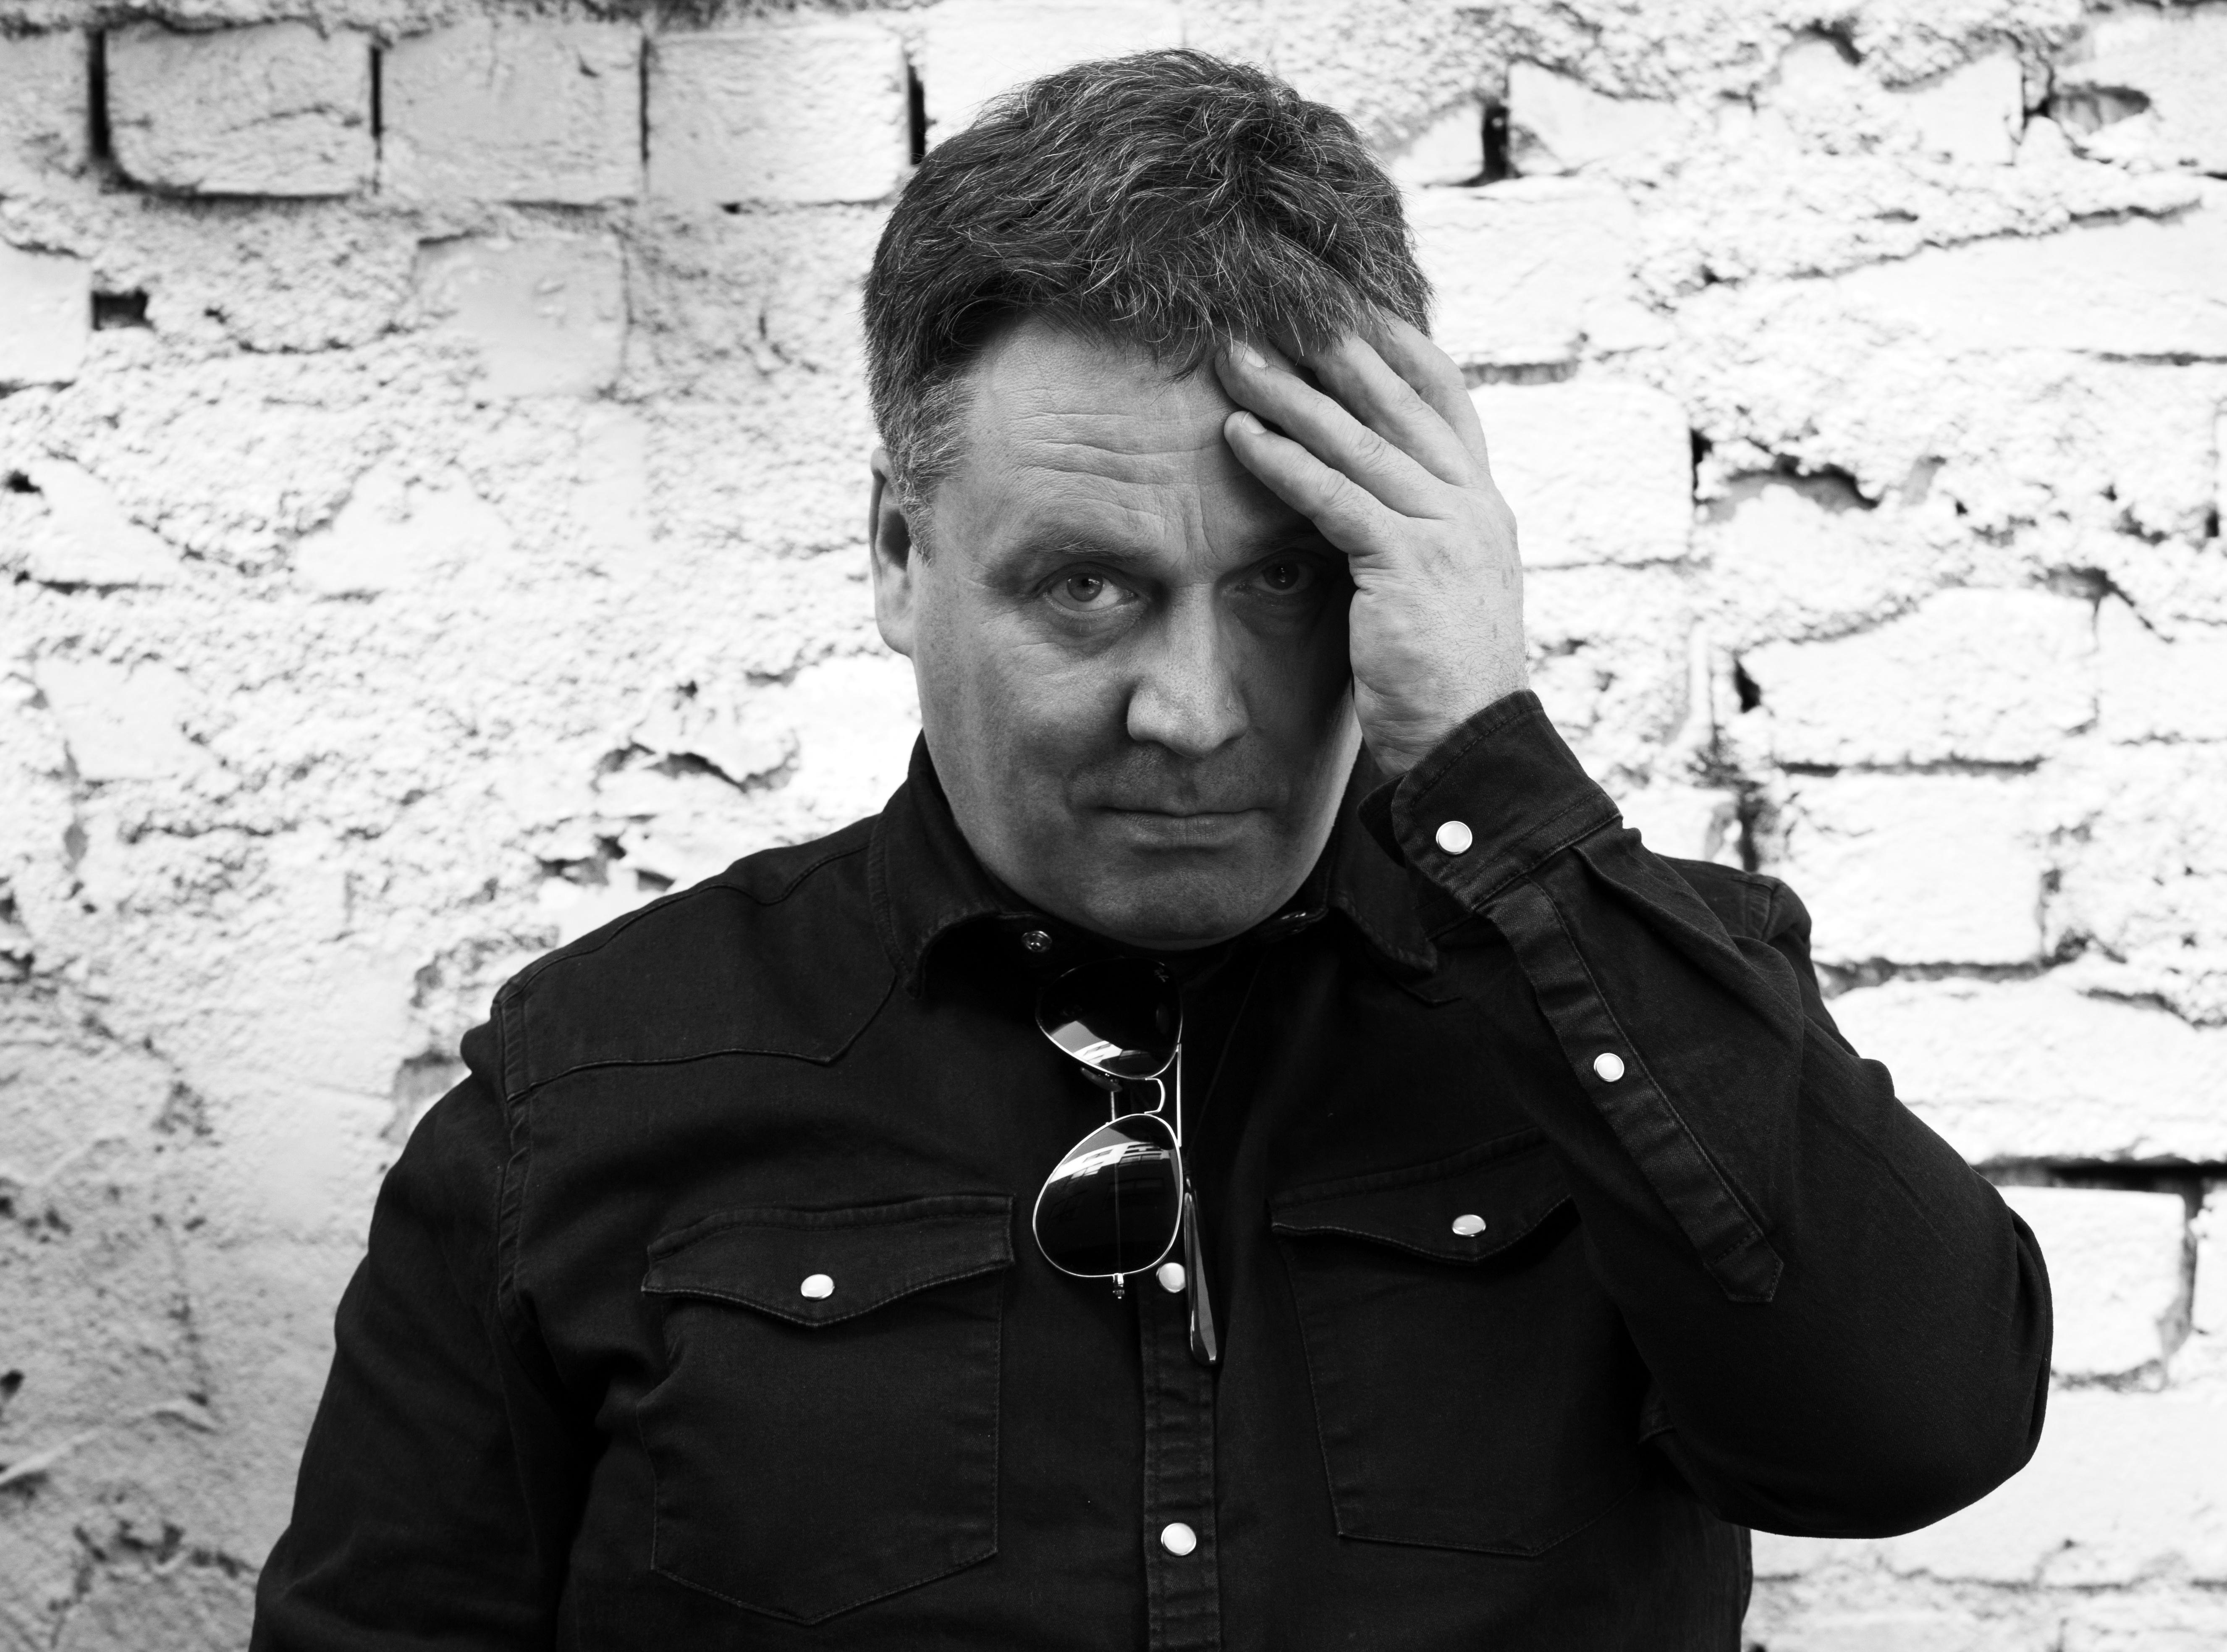 The Chills review – Martin Phillipps' triumph and tragedy told with extraordinary candour